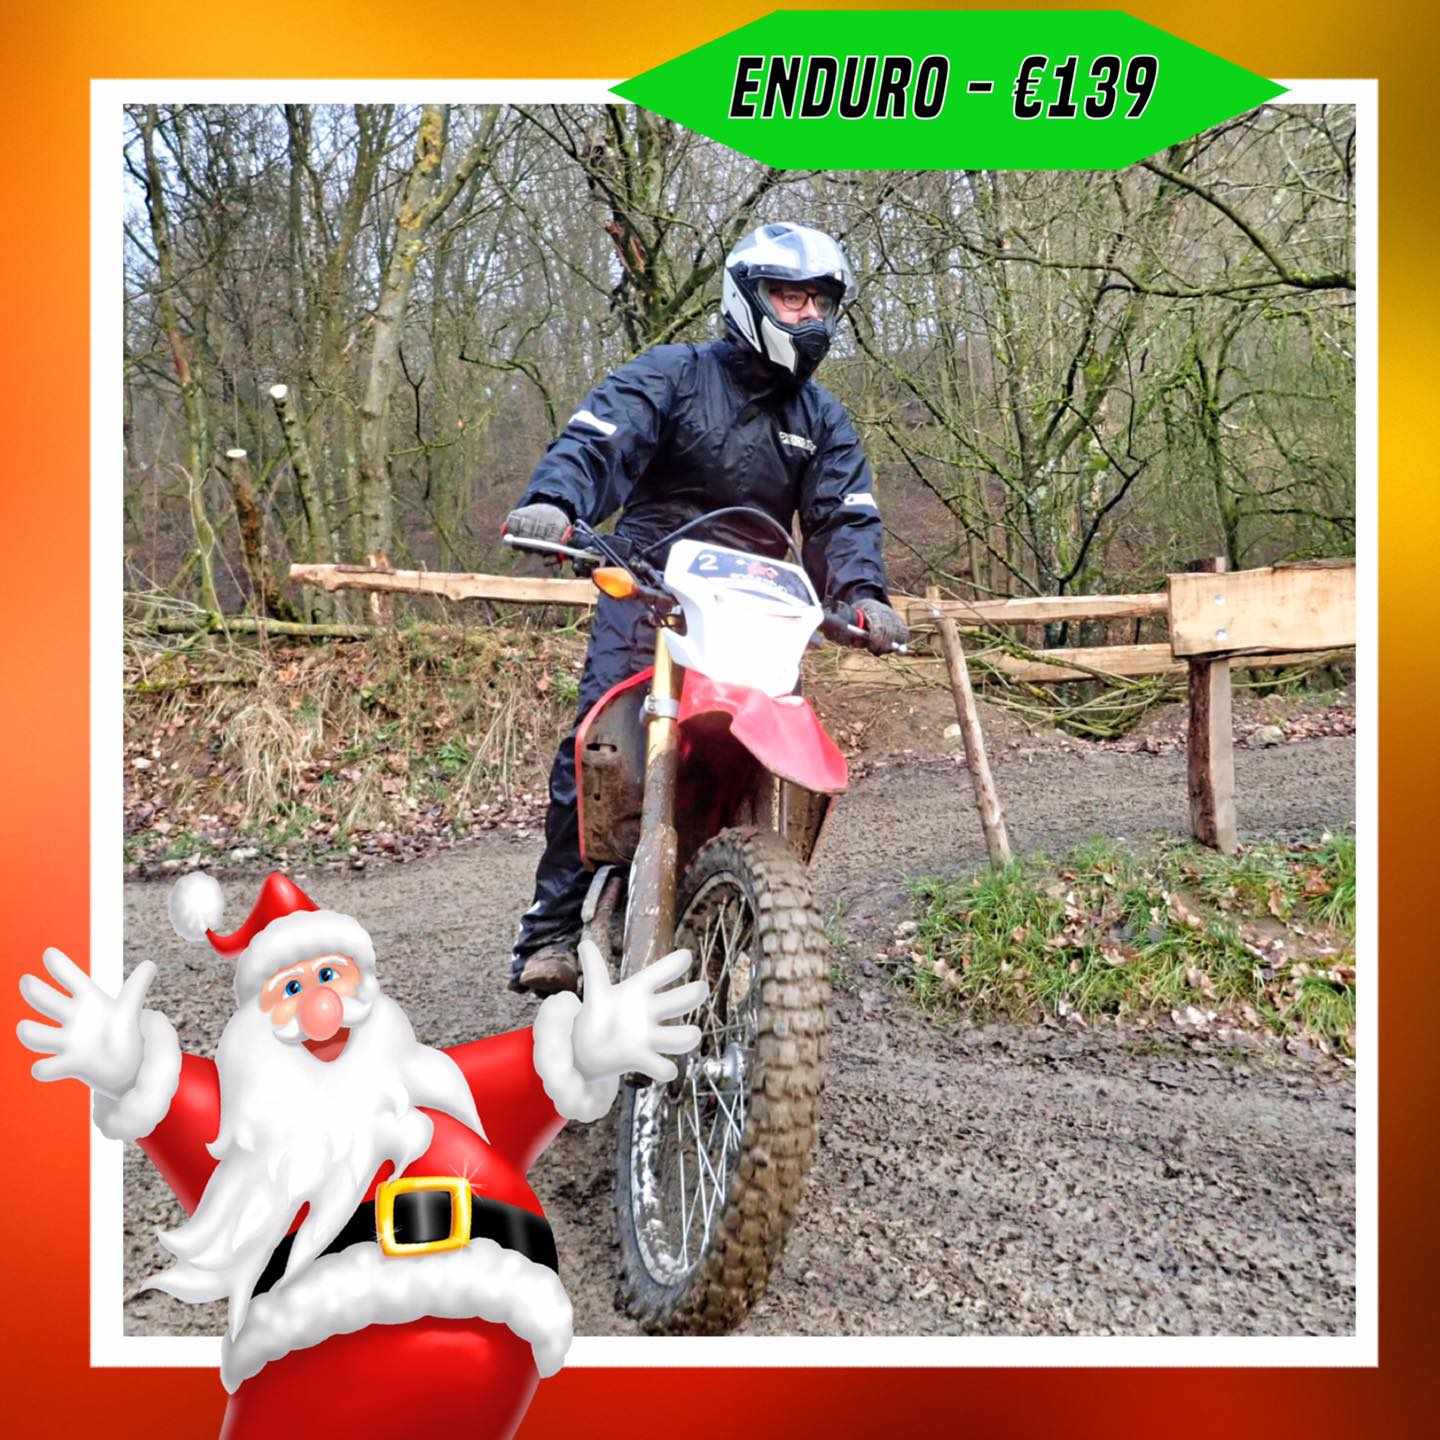 Kerst-initiaties Bilstain Endurofun 20